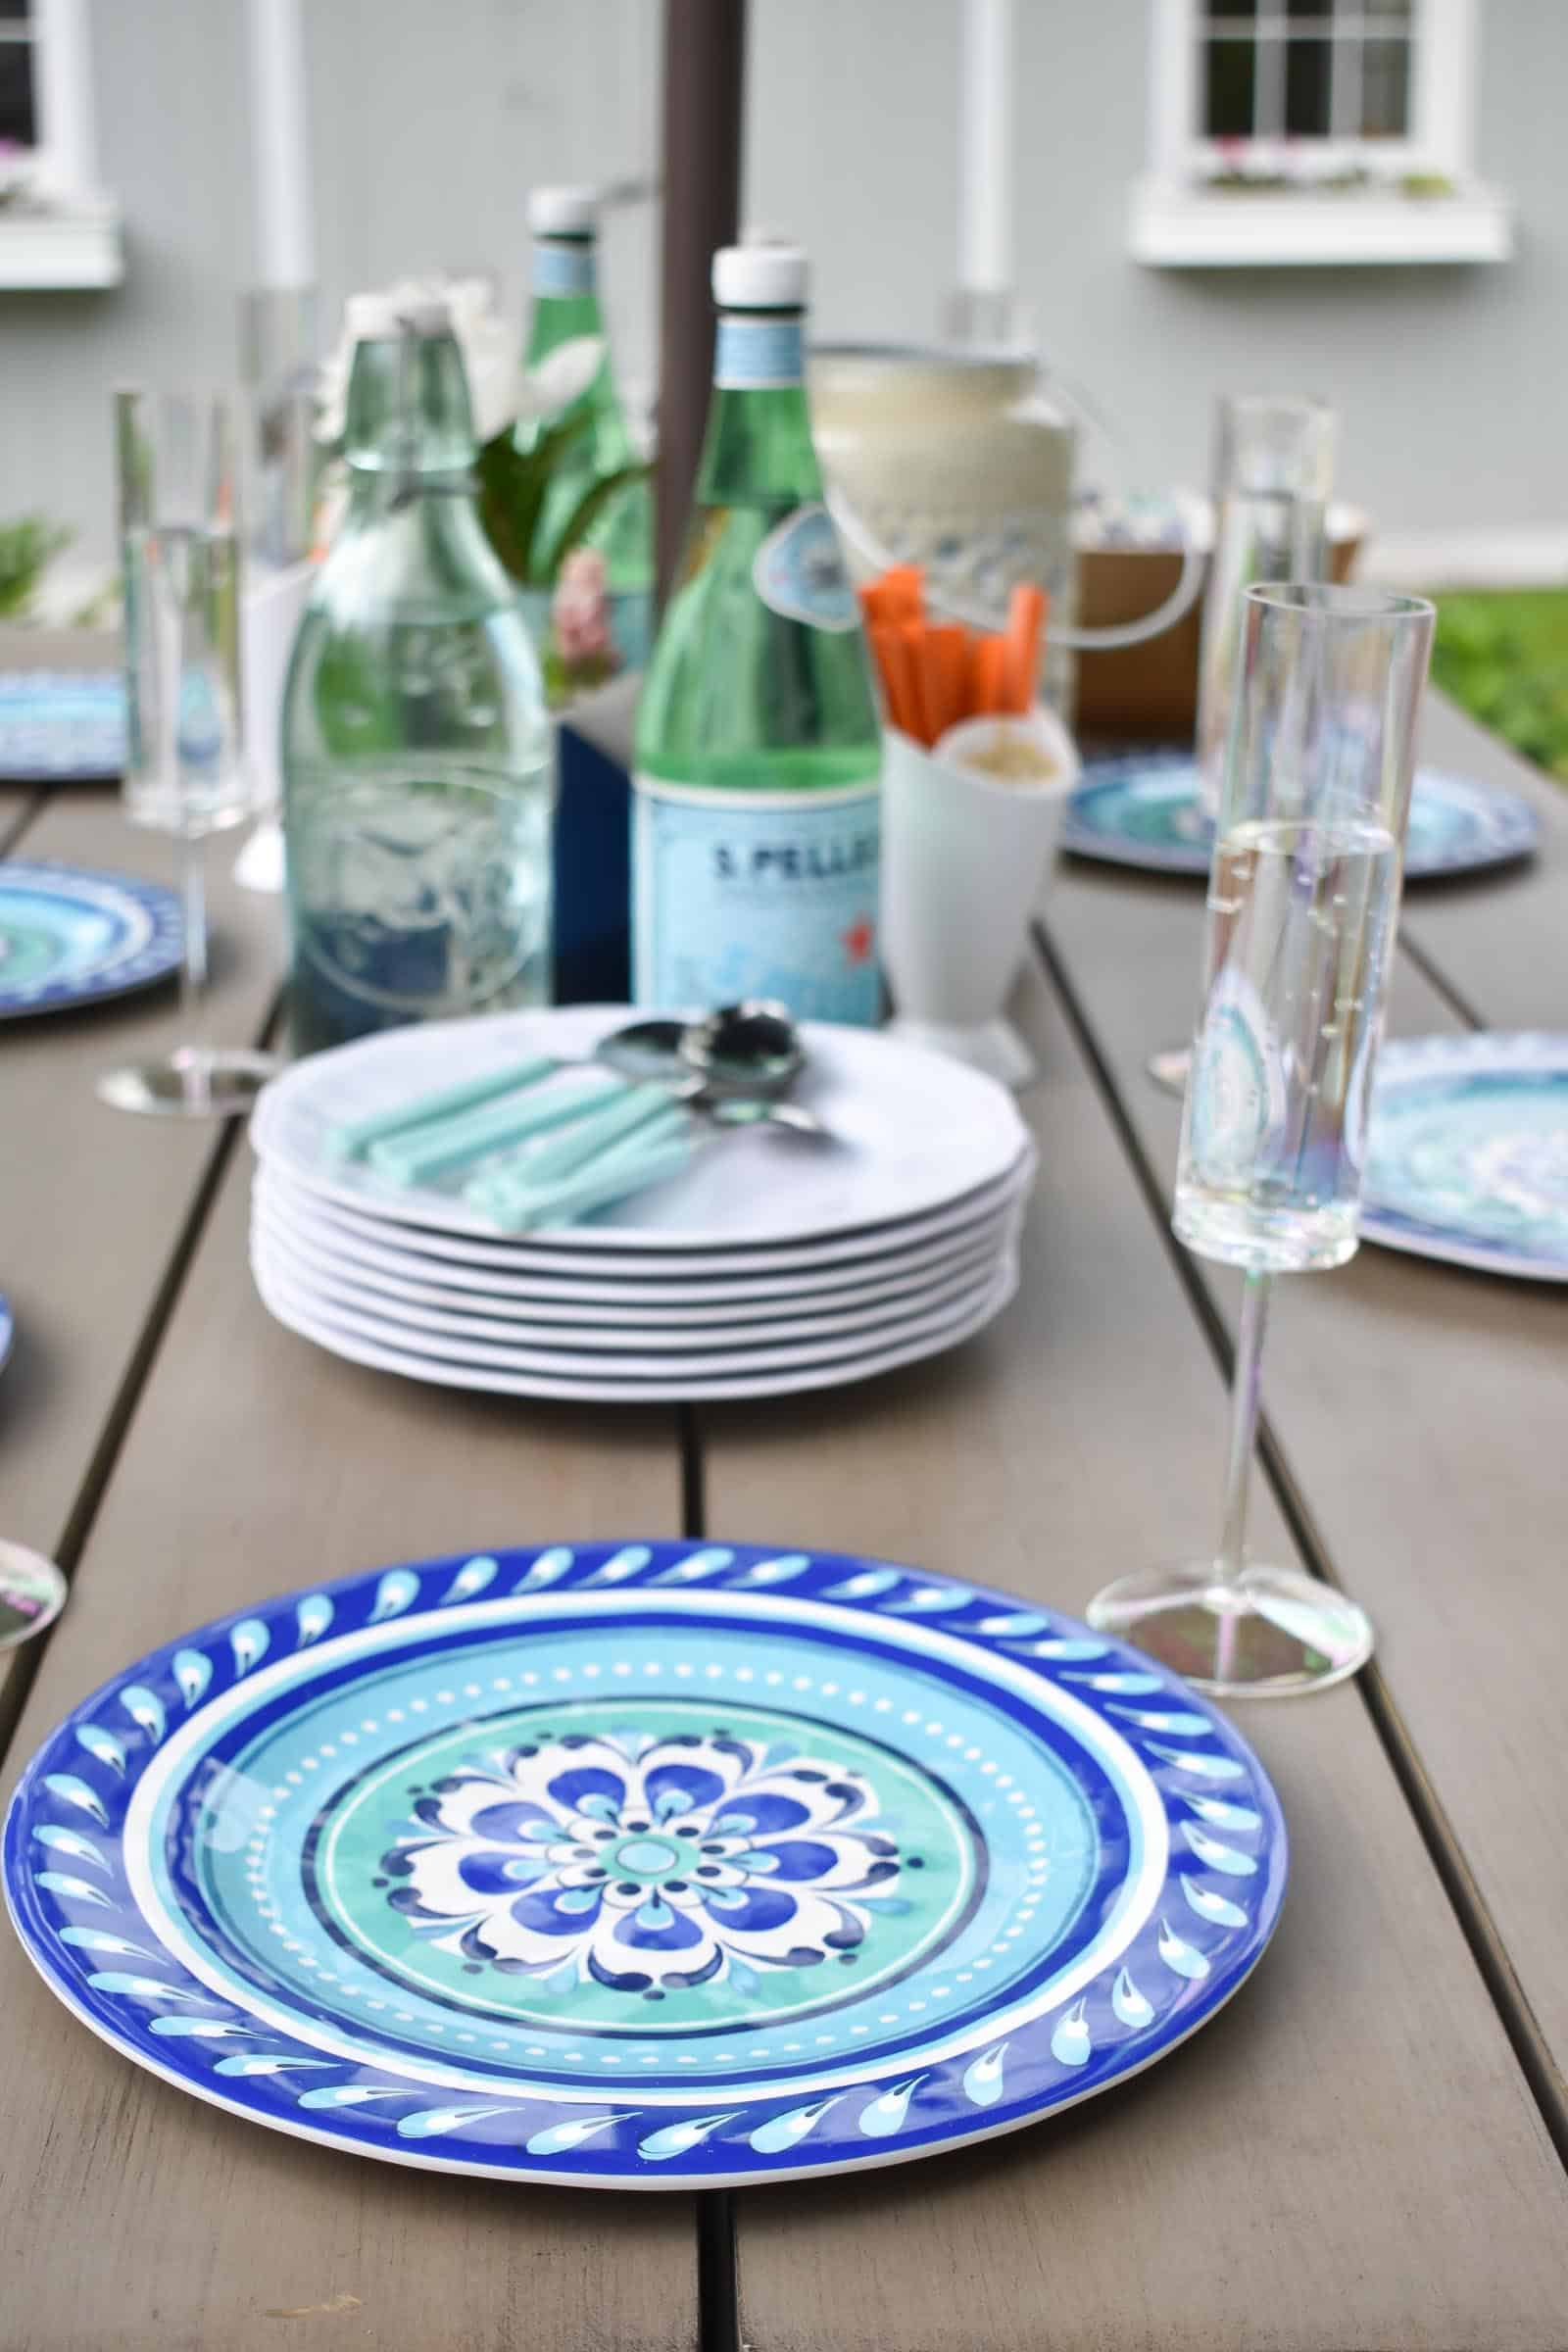 melamine patio plates for the kids